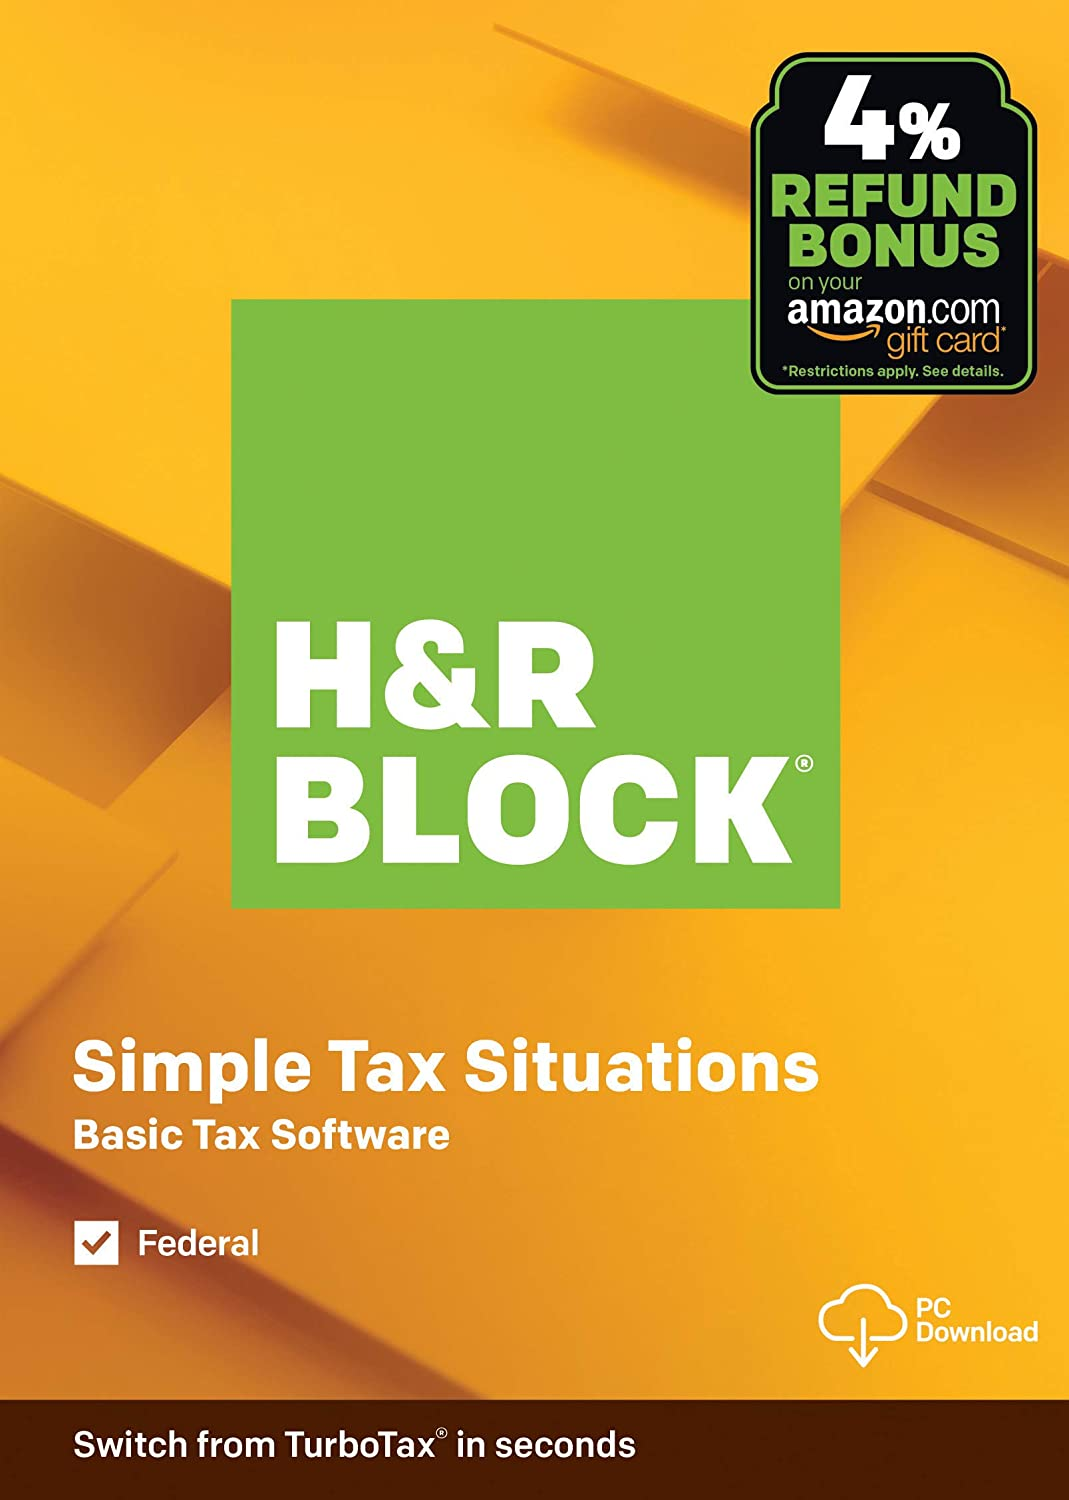 H&R Block Tax Software Basic 2019 with 4% Refund Bonus Offer [Amazon Exclusive] [PC Download]